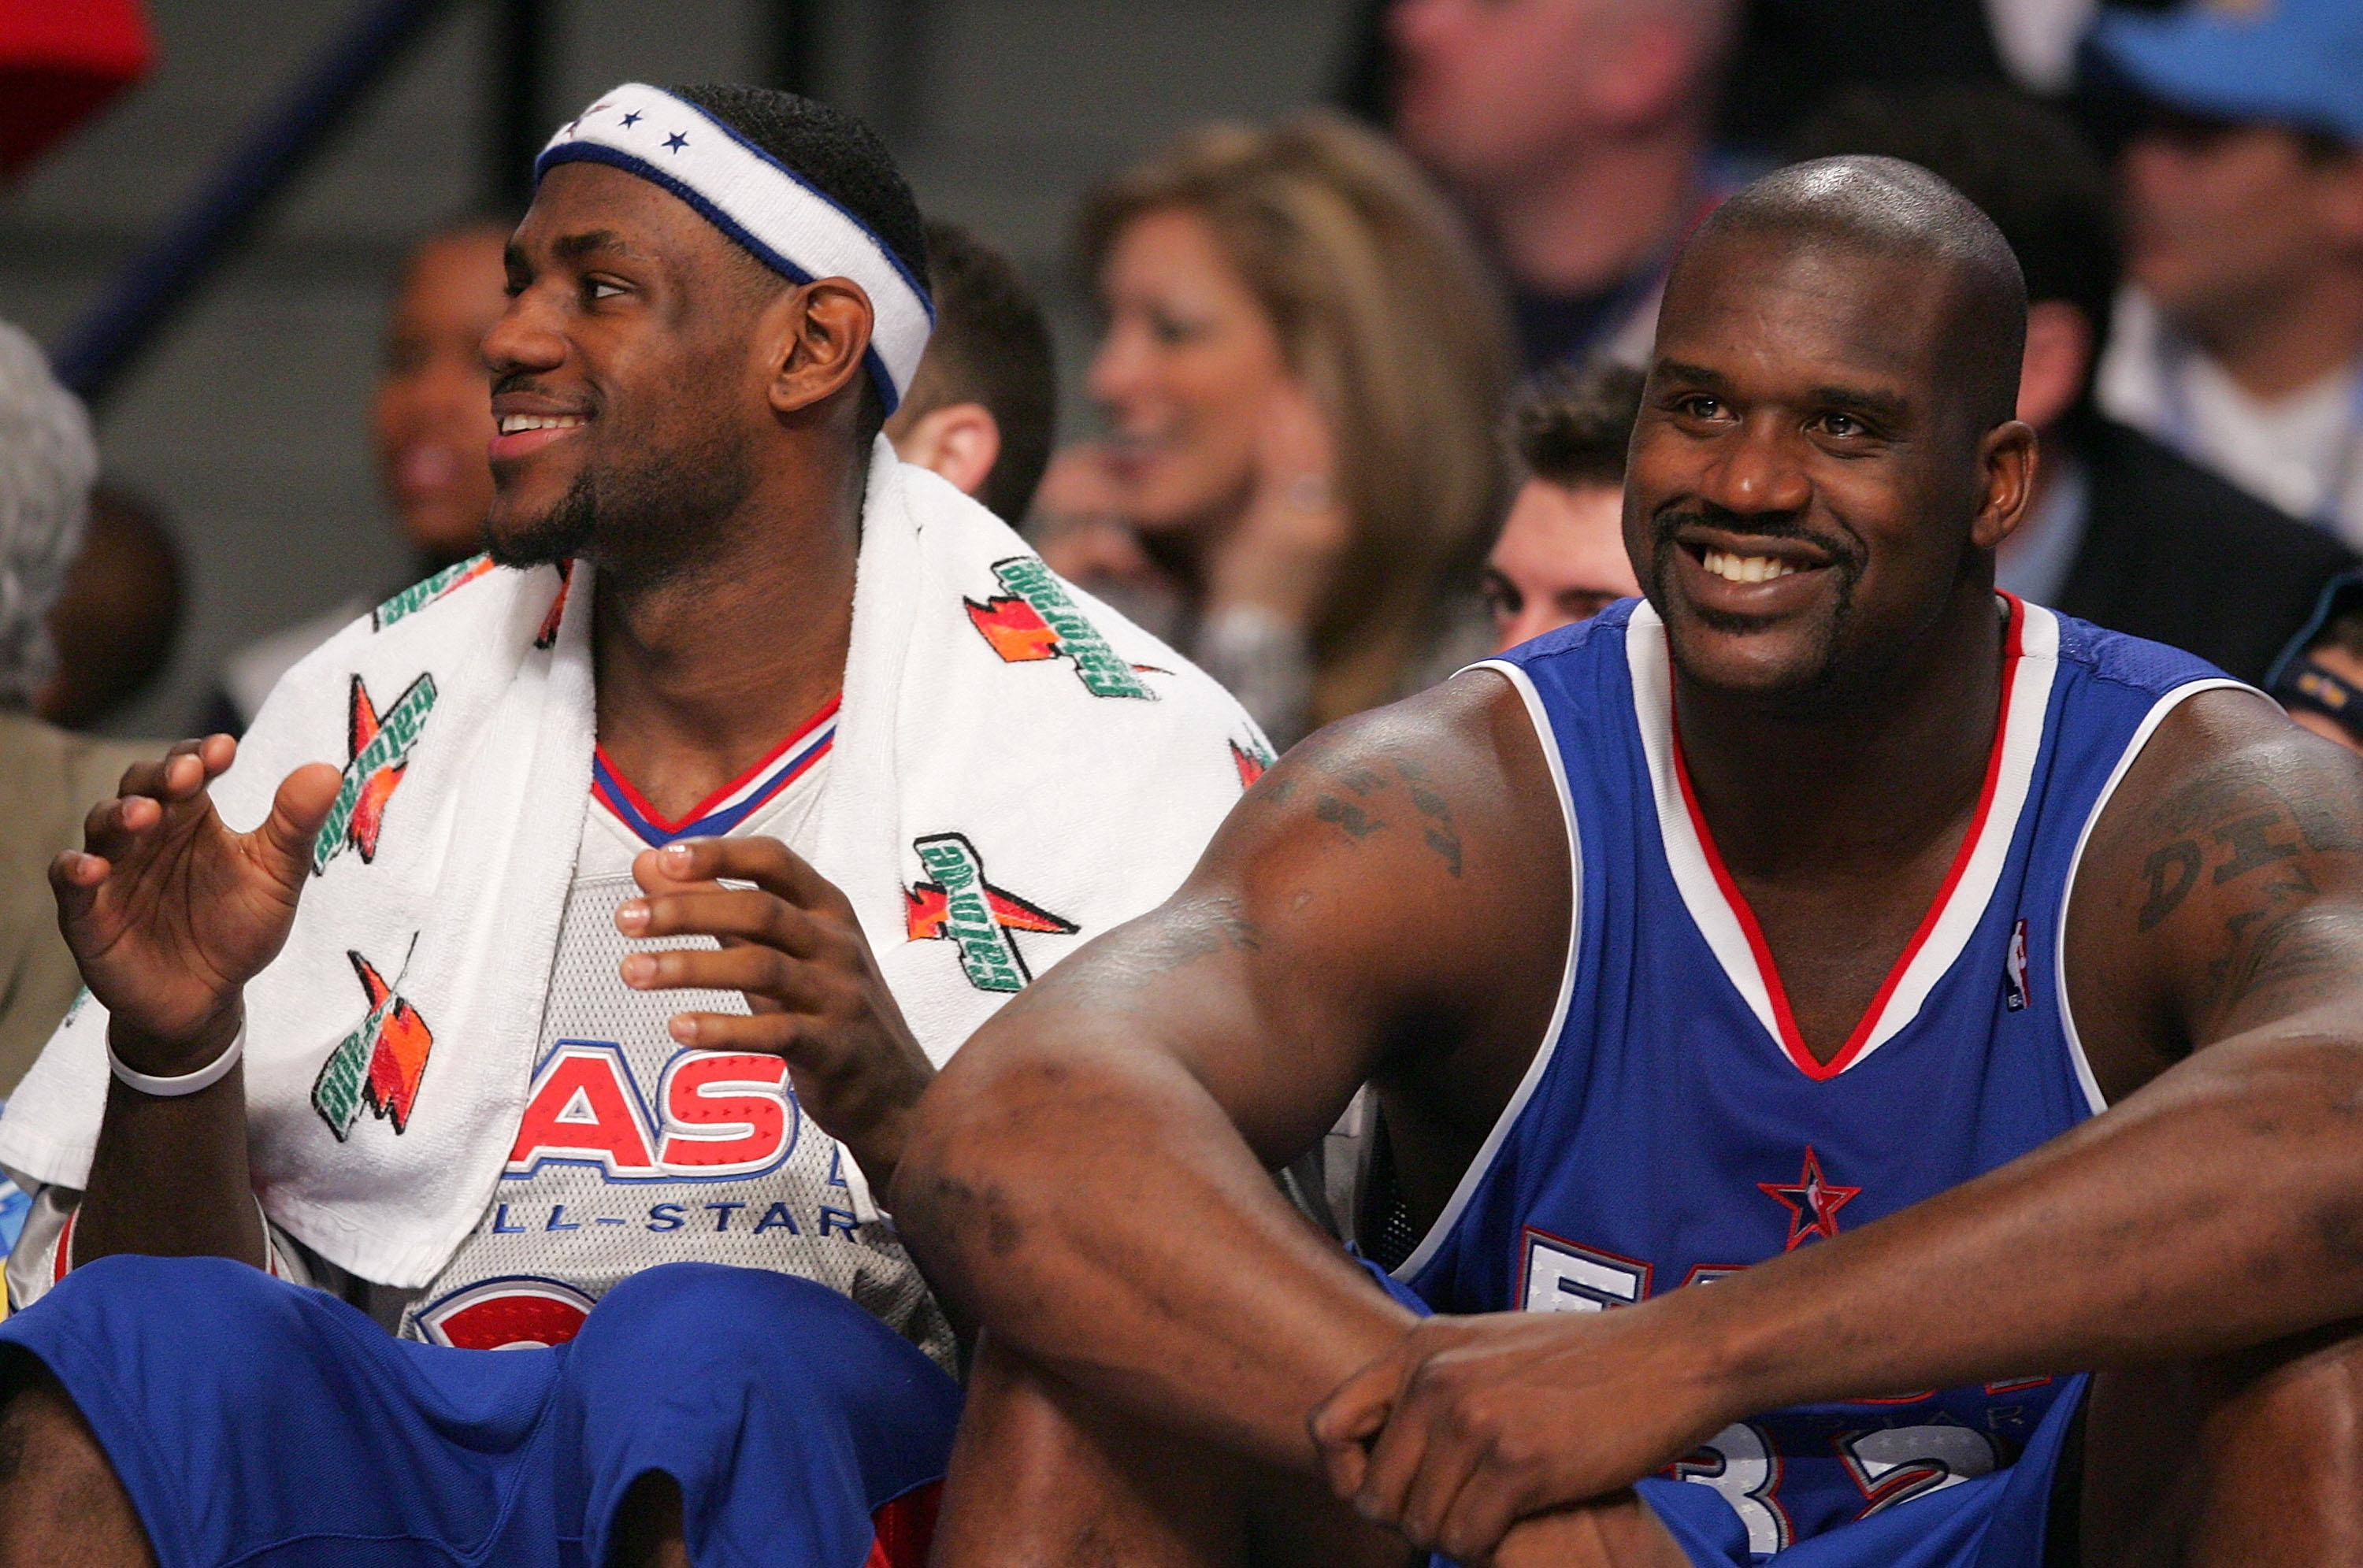 Shaq says his Lakers team would 'easily' beat the Warriors